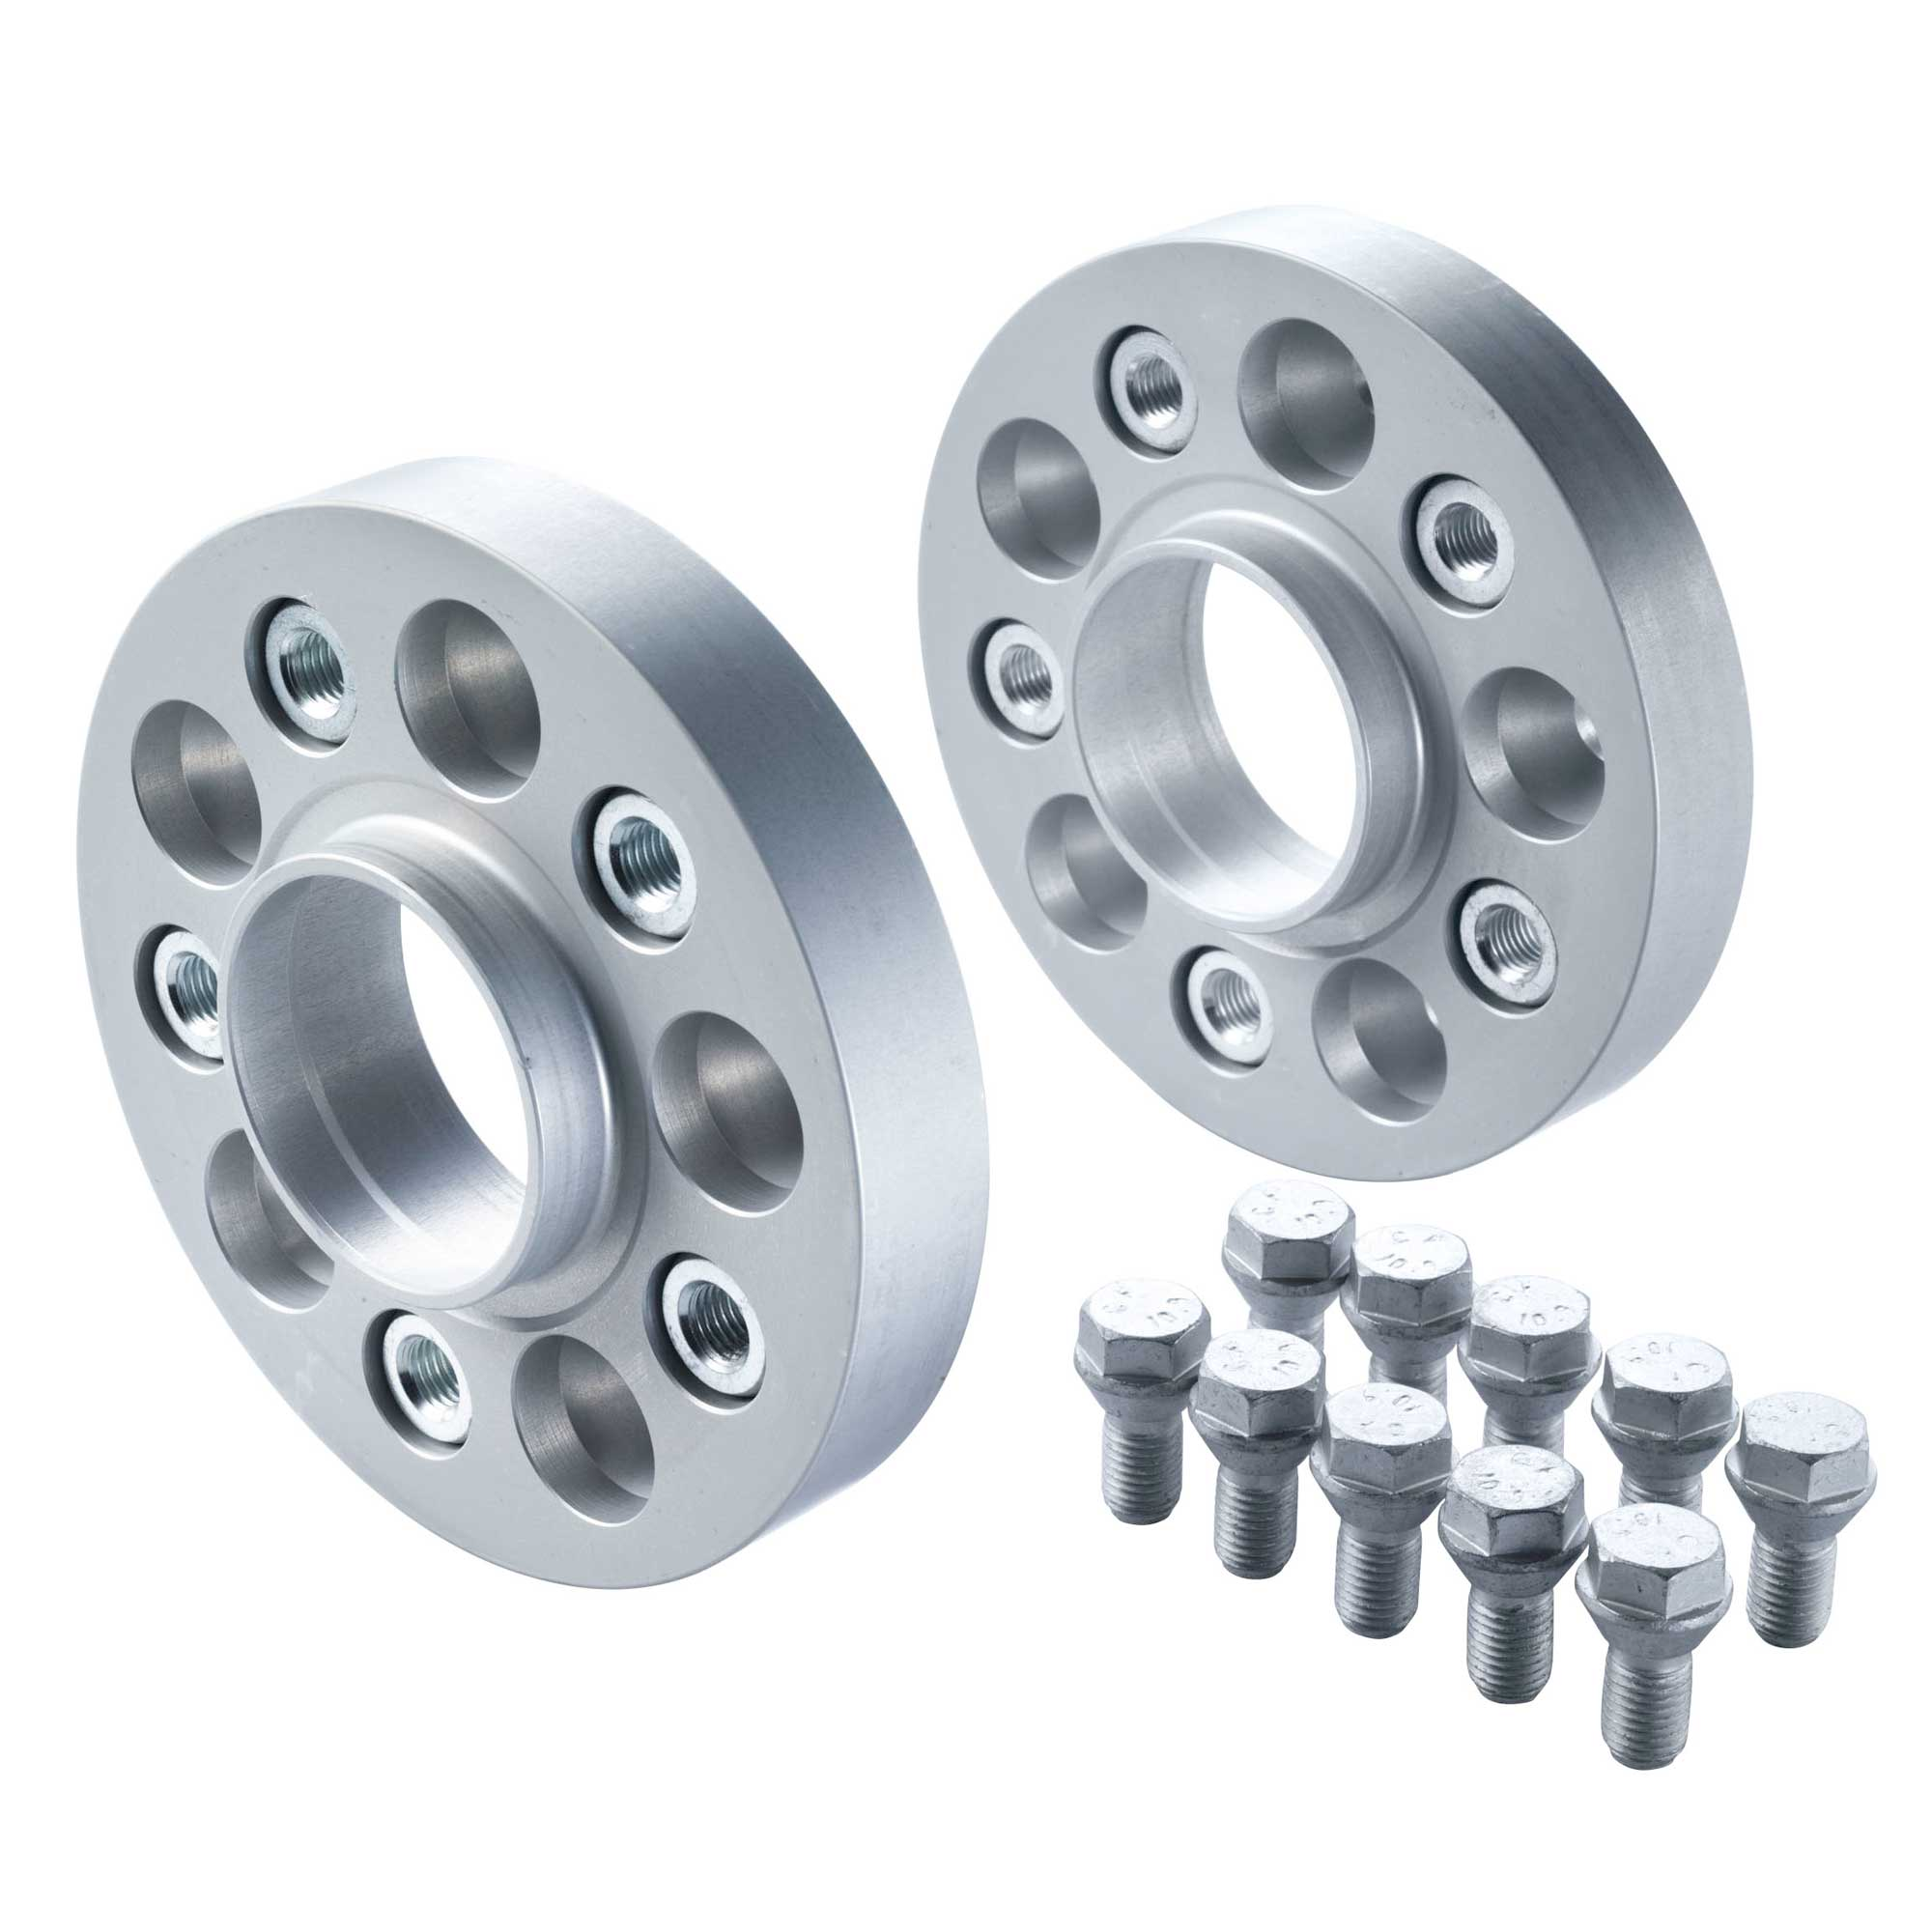 Eibach 20mm Wheel Spacers For Bmw 3 Series E46 All Models Inc M Sport Touring Ebay